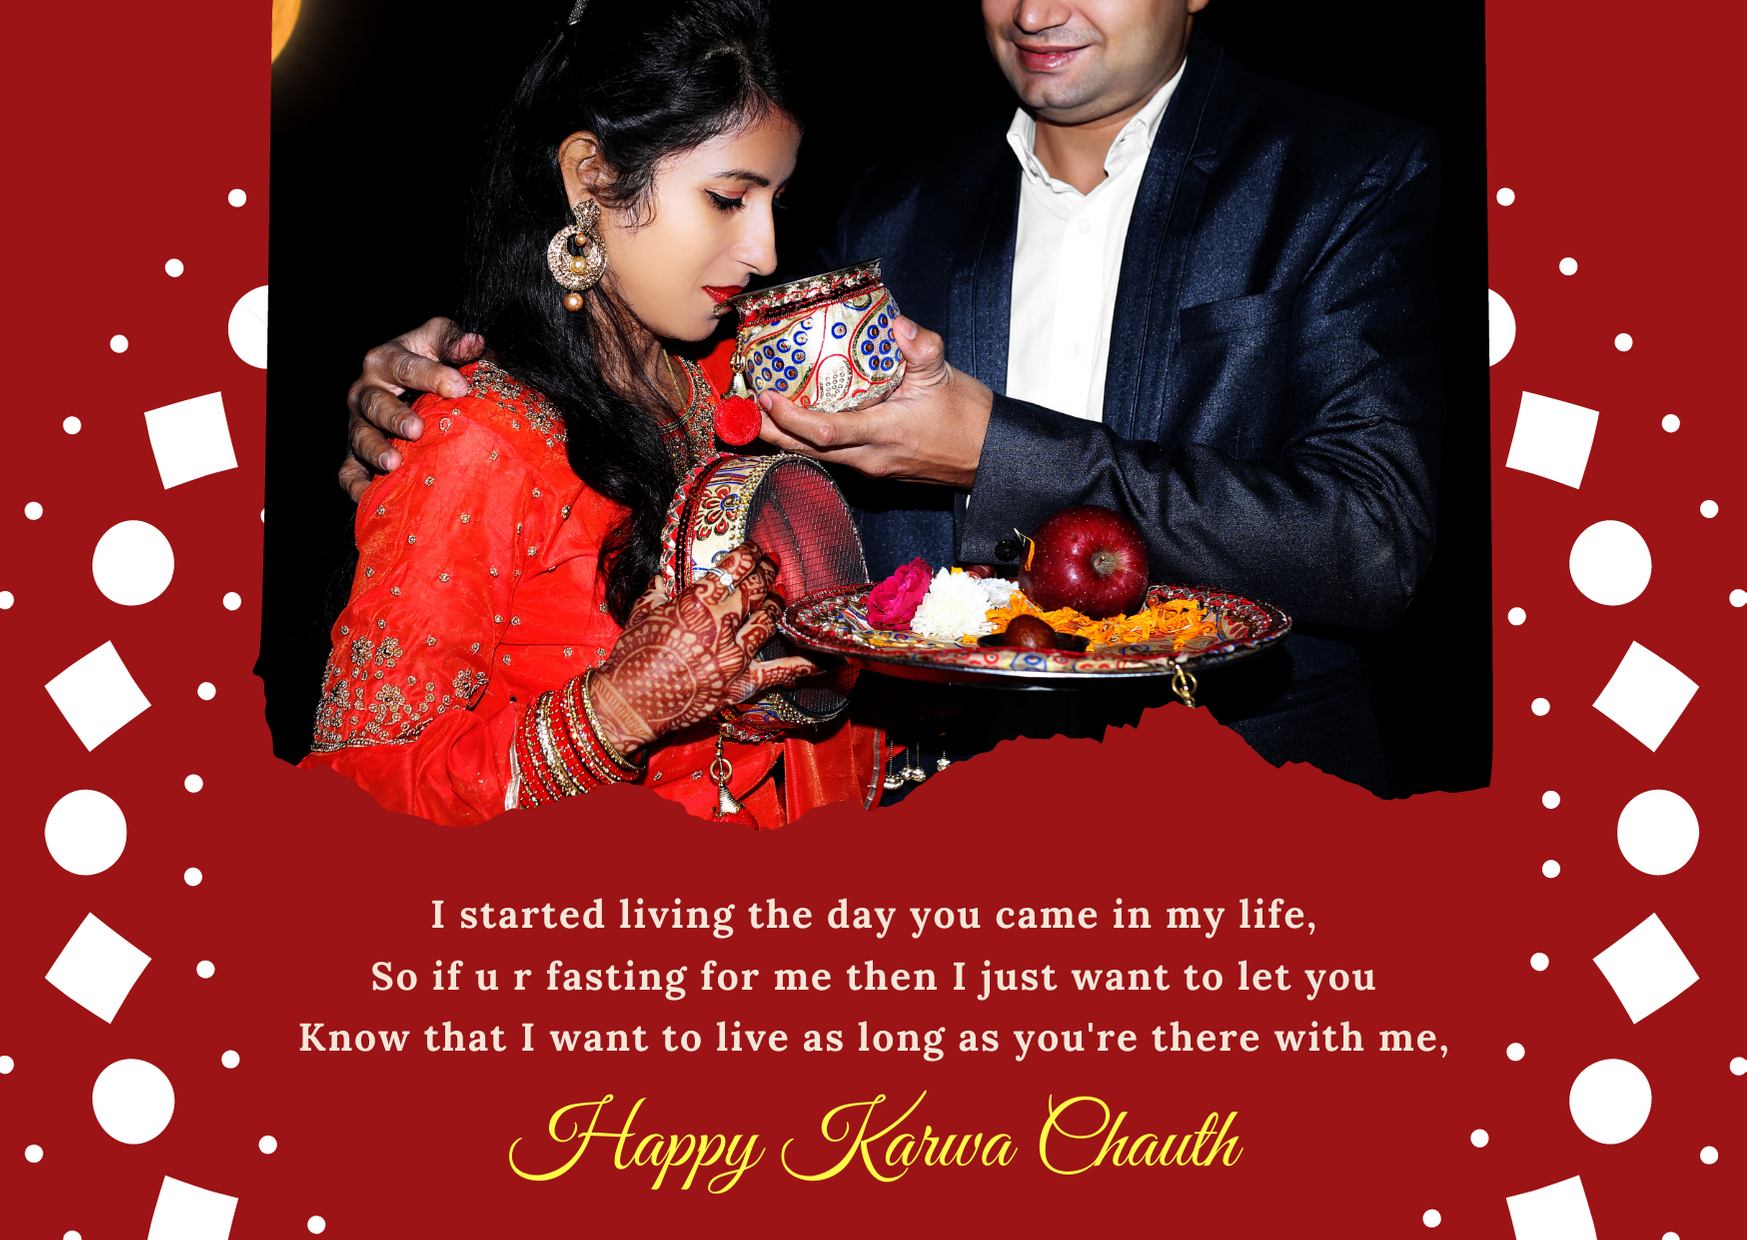 karwa chauth wishes for girlfriend